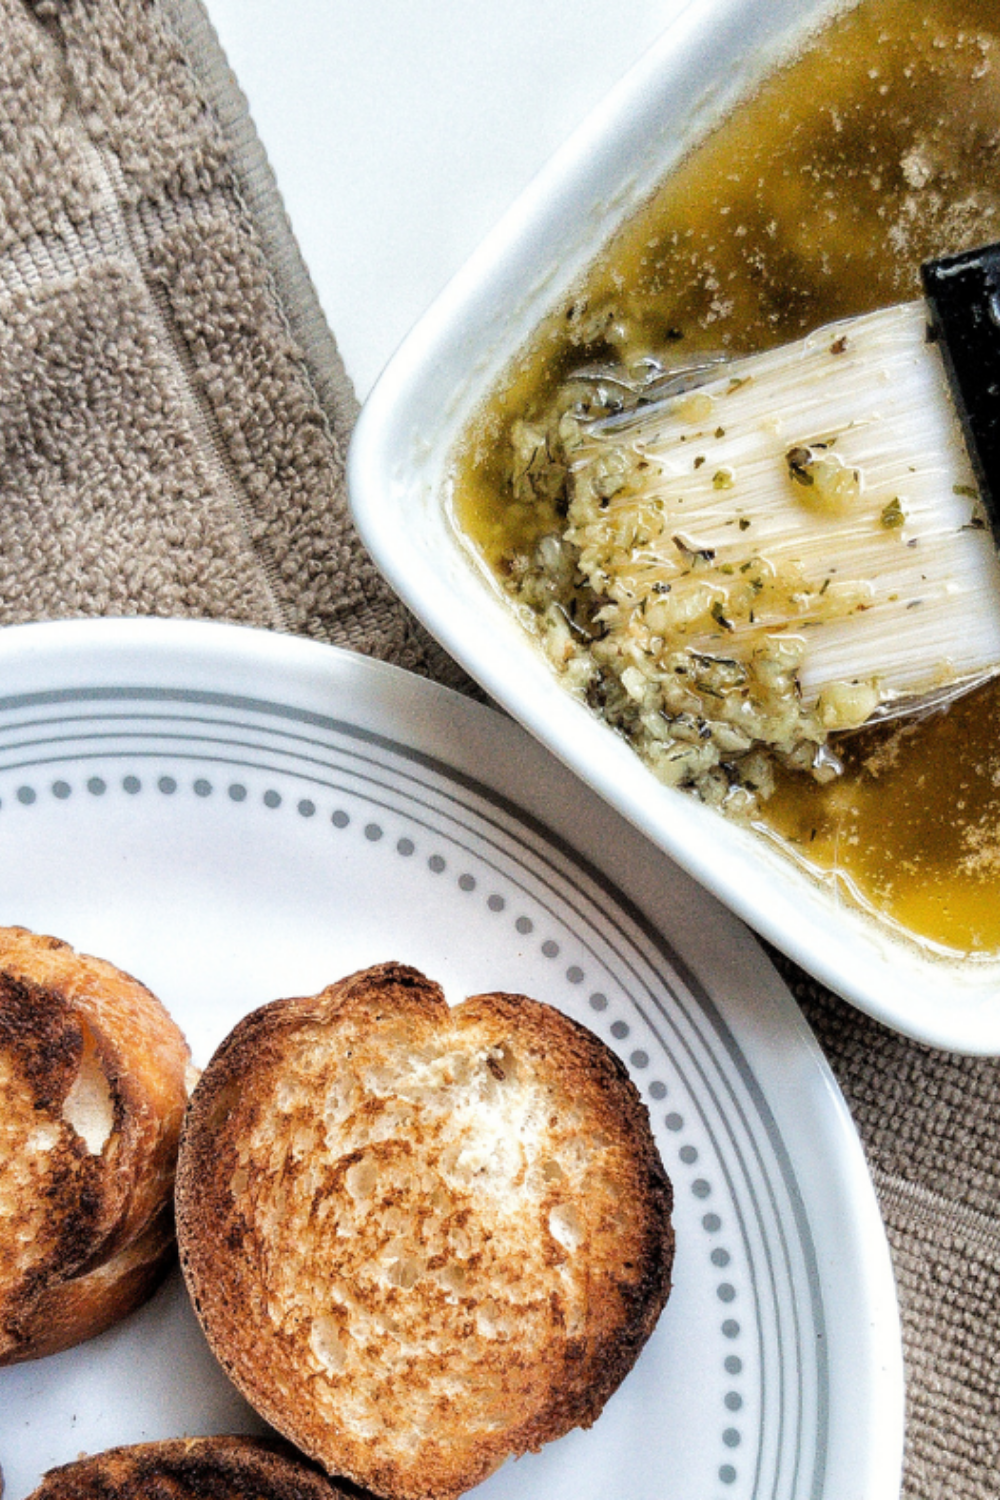 Small round toasts with a side of garlic butter in a small bowl